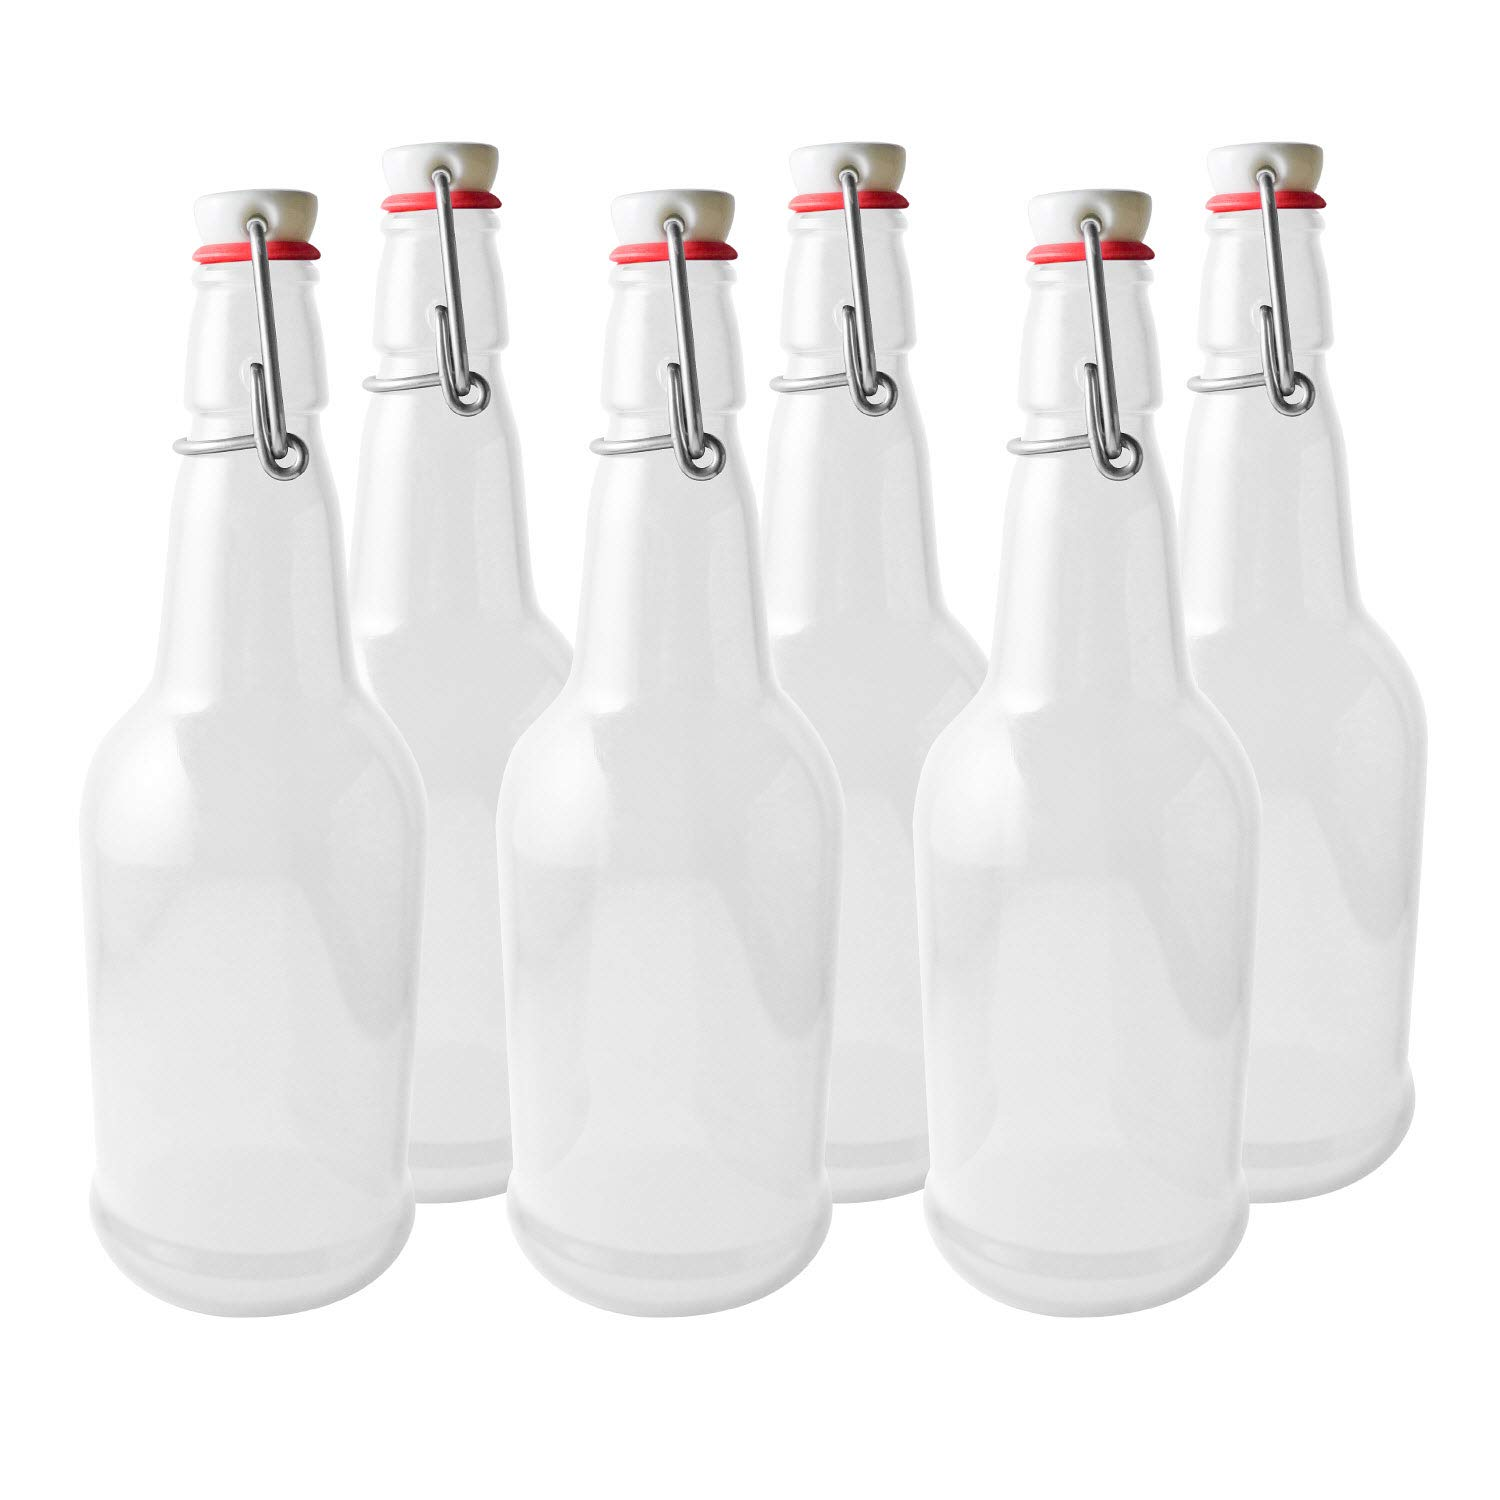 Secure Swing 16 oz Beer Bottles with Ceram-Seal Ceramic Cap for Fermentation & Carbonation of Beer, Soda, Kombucha - 6 Pack - Clear